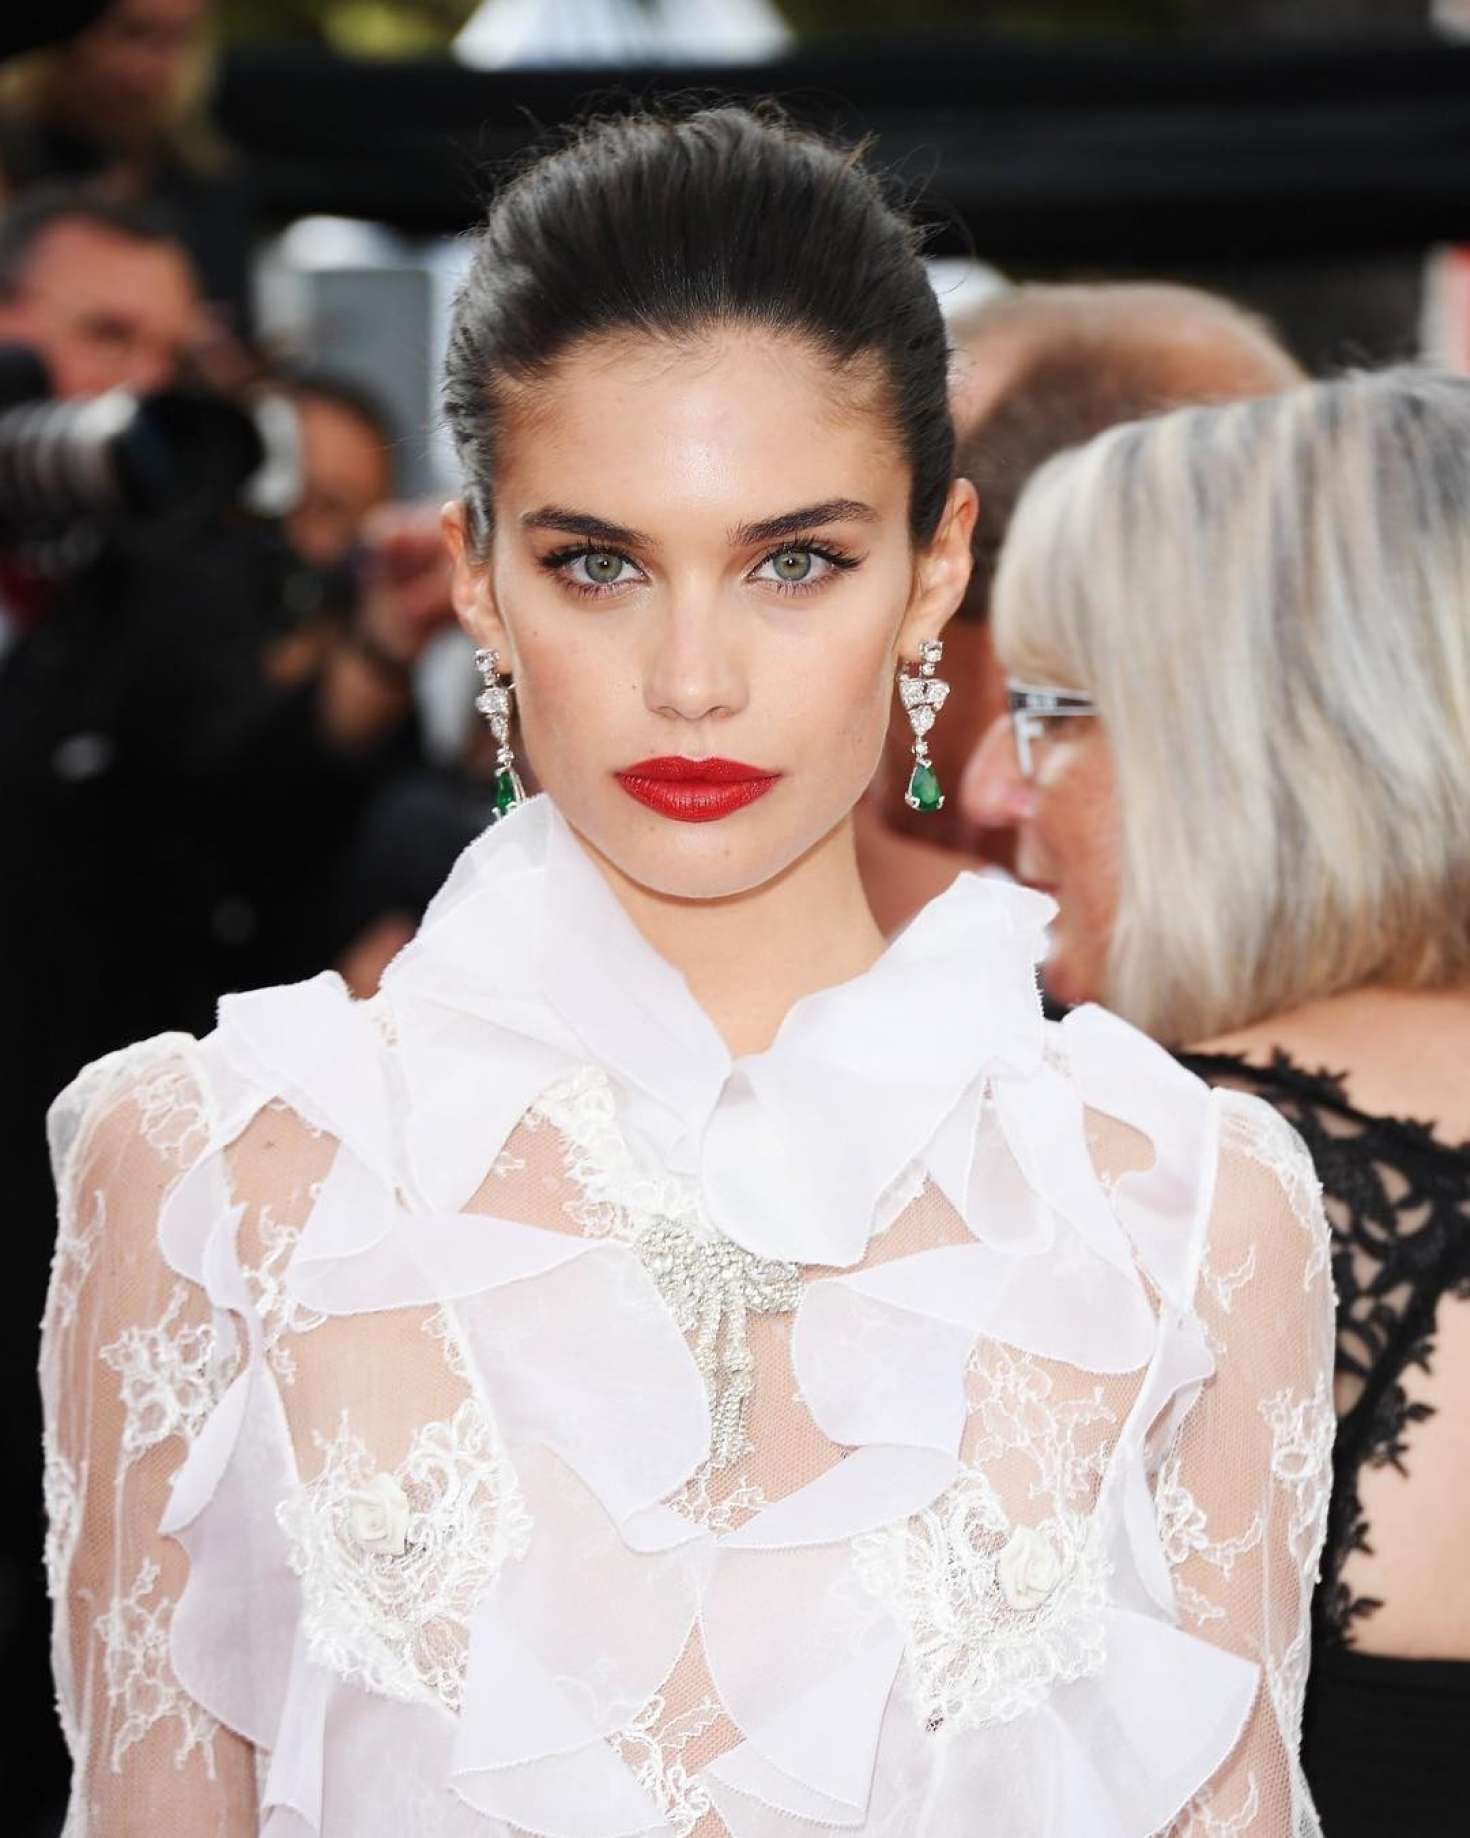 Sara Sampaio – 'The Killing of a Sacred Deer' Premiere at 70th Cannes Film Festival   Sara-Sampaio:-The-Killing-of-a-Sacred-Deer-Premiere-at-70th-Cannes-Film-Festival--01